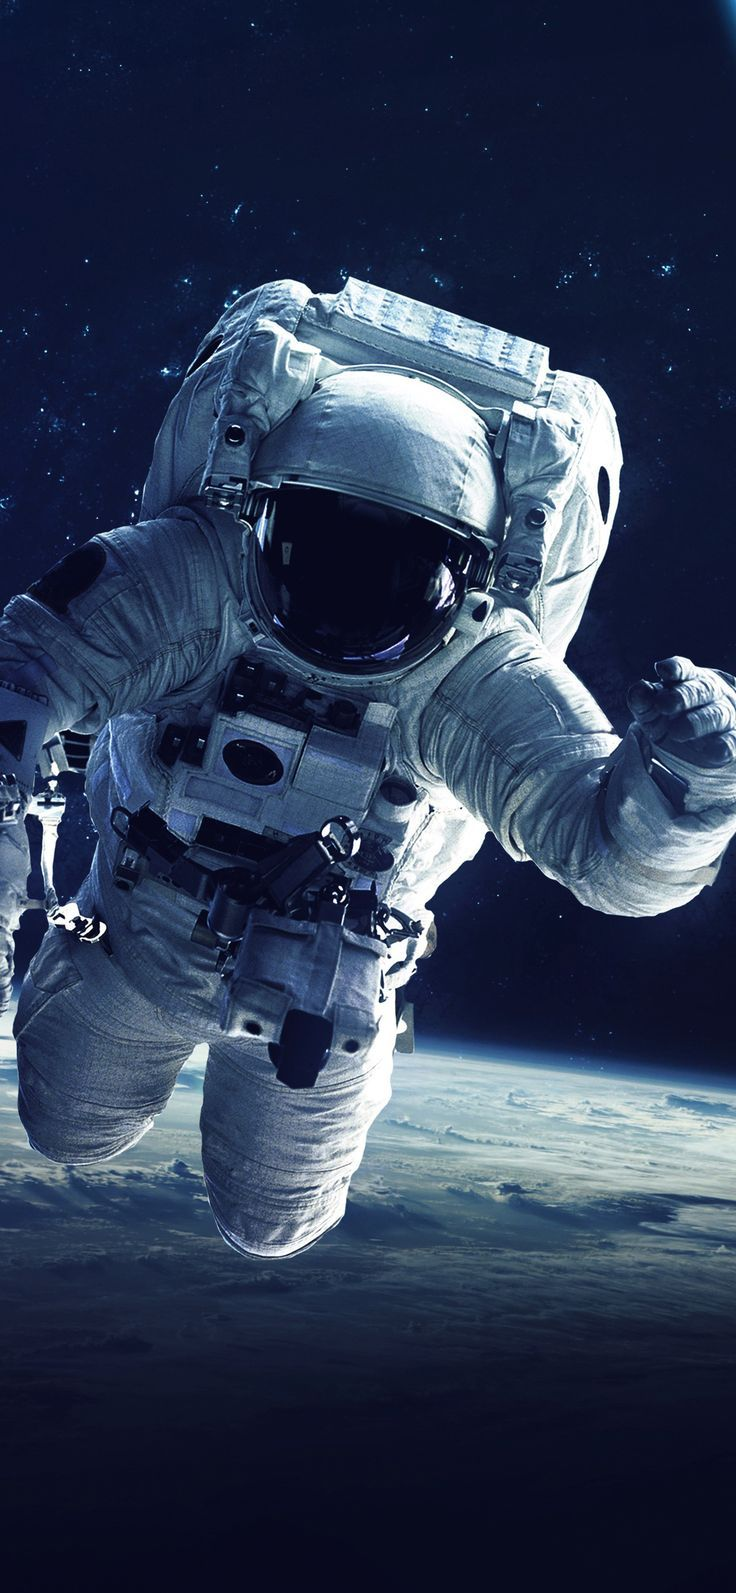 1125x2436 Astronaut 5k Iphone Xs Iphone 10 Iphone X Hd 4k Wallpapers Images Ba Space Https Youtube25 Astronaut Wallpaper Wallpaper Space Space Artwork